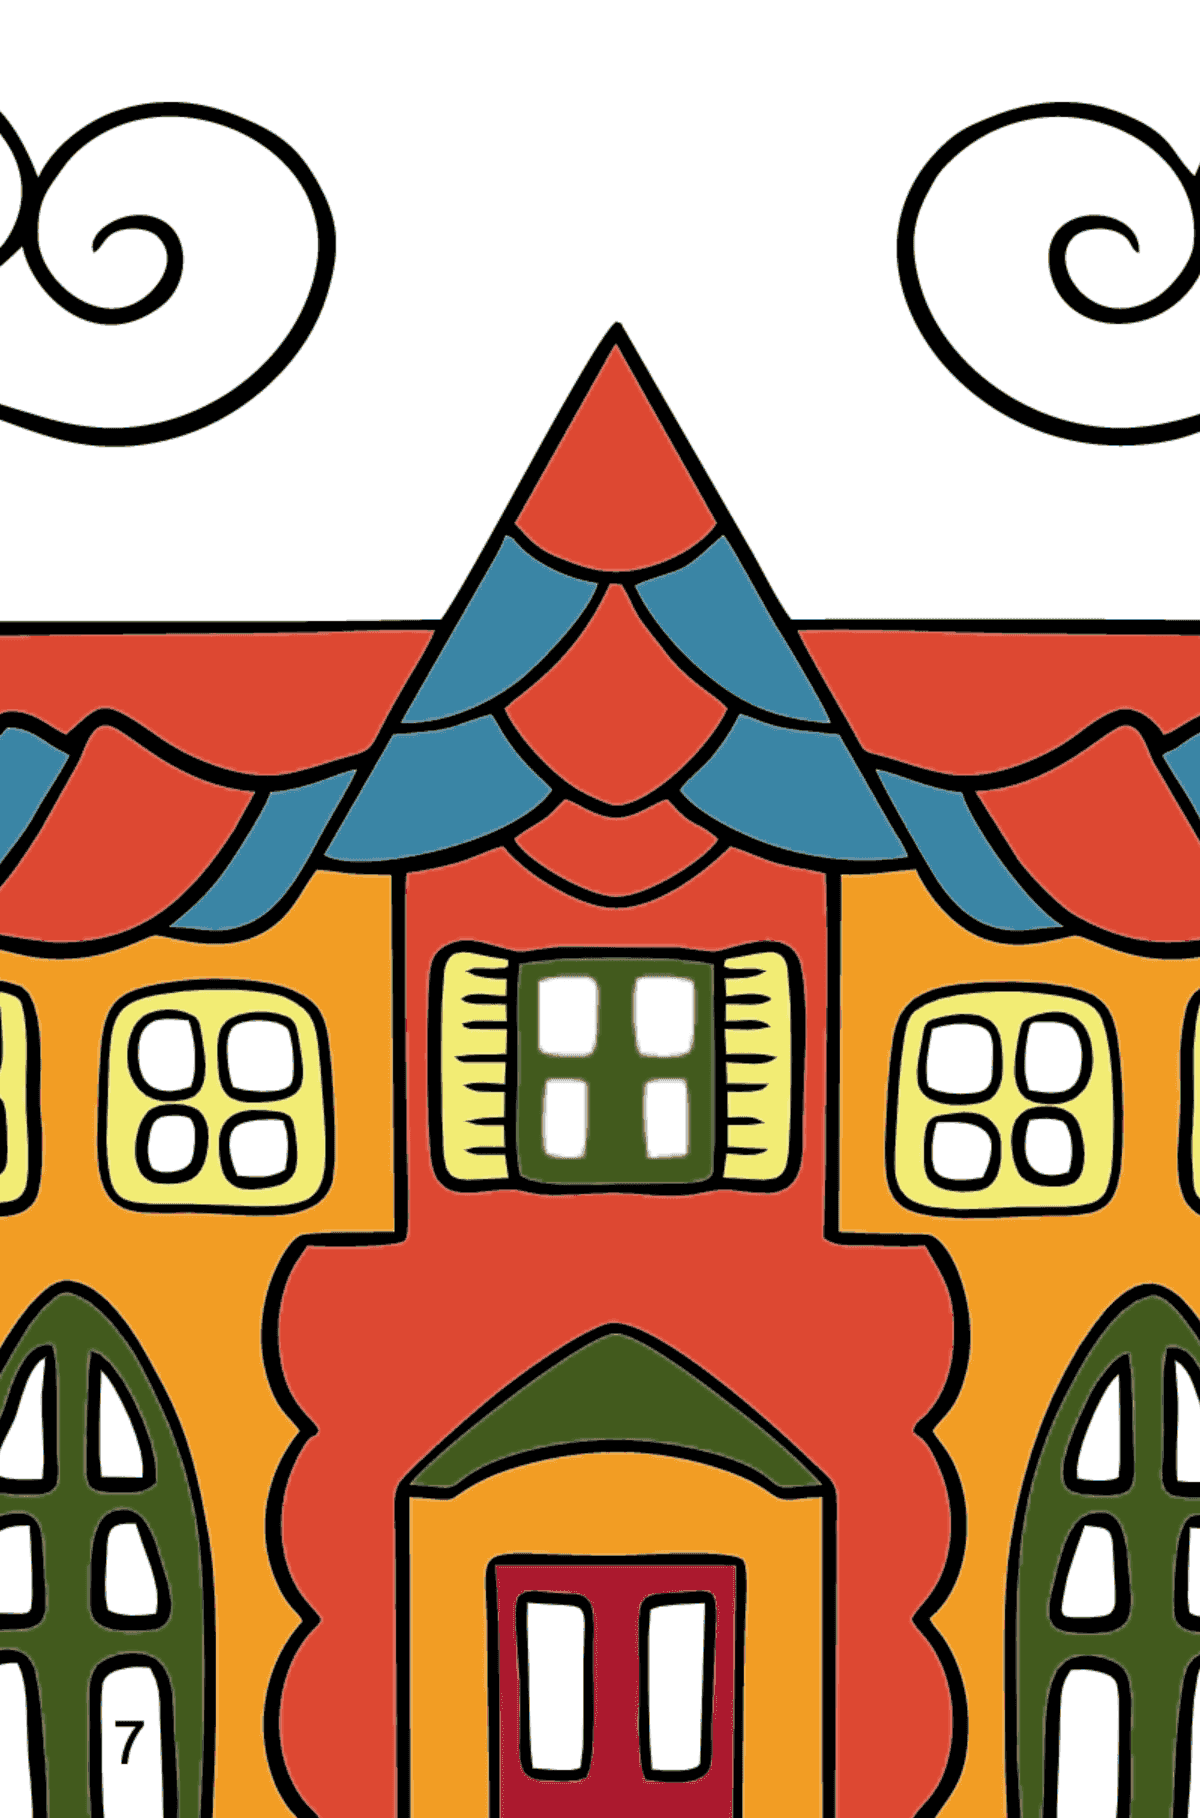 Simple Coloring Page - A House in an Enchanted Kingdom for Children  - Color by Number